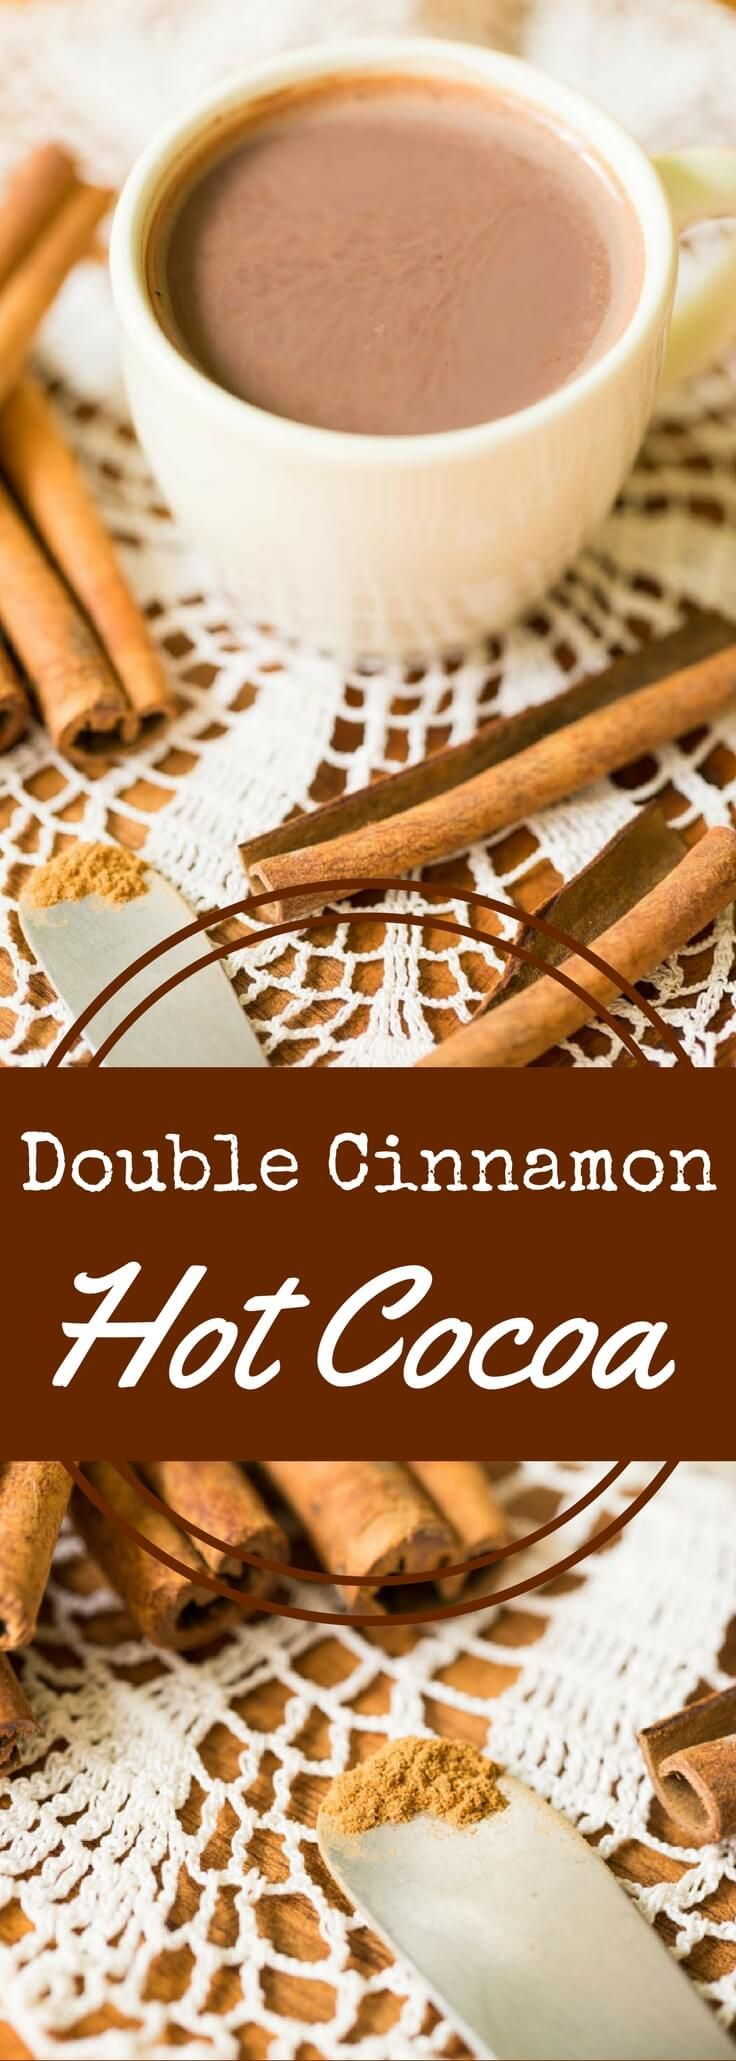 Two kinds of cinnamon plus cocoa equals the best cinnamon hot chocolate (or cinnamon hot cocoa) you've ever had. Rich, complex, and satisfying.  Sponsored by ZonePerfect. #ZonePerfect #everydaywins